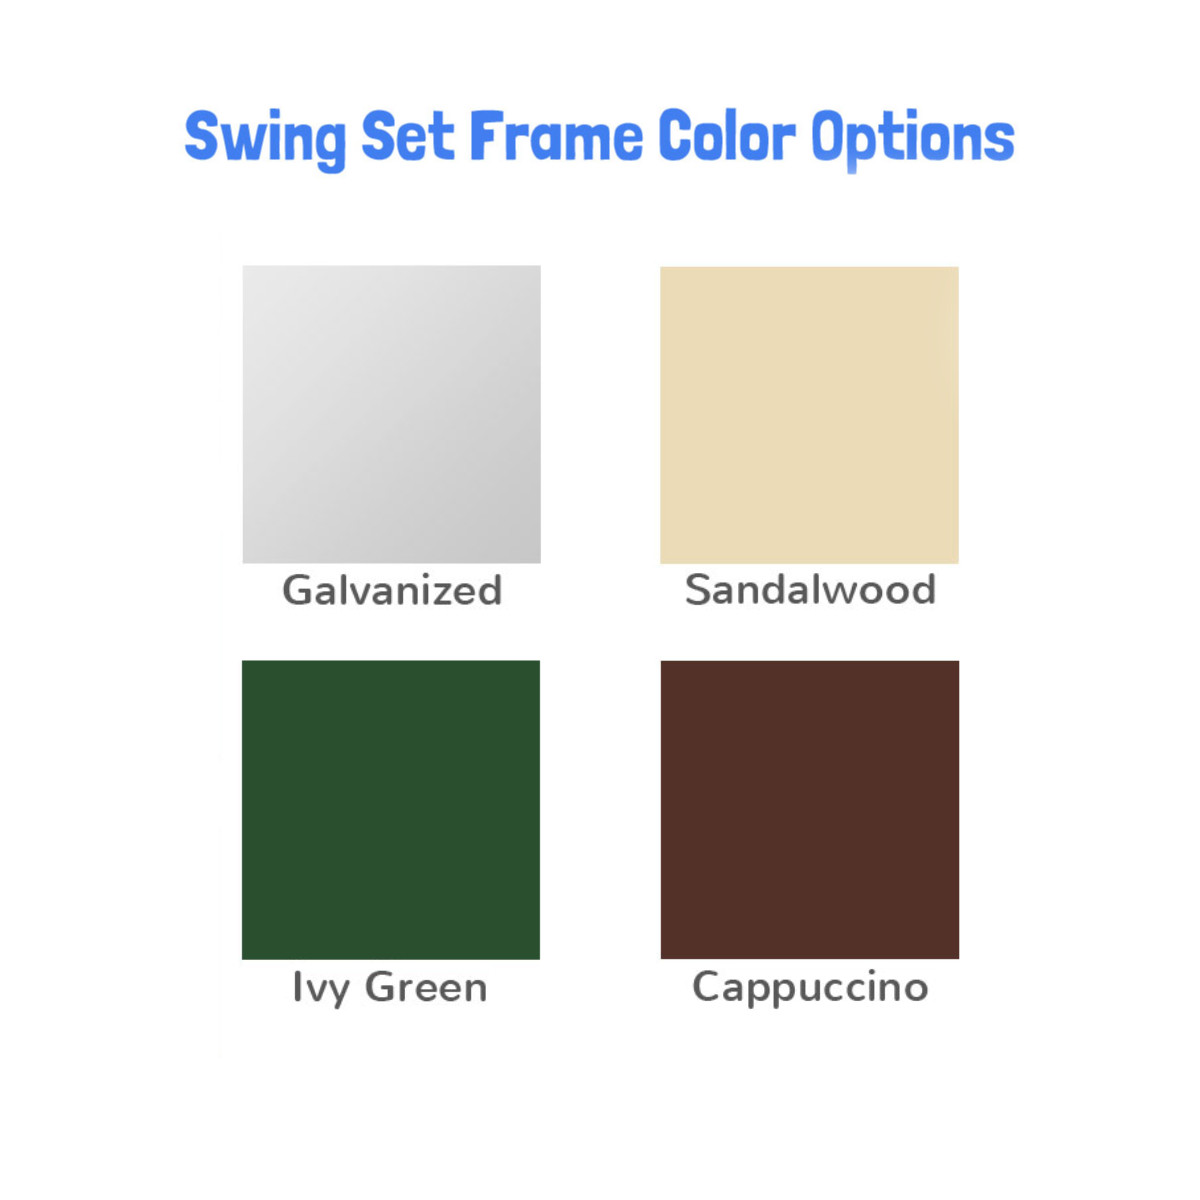 Swing Set Frame Color Chart